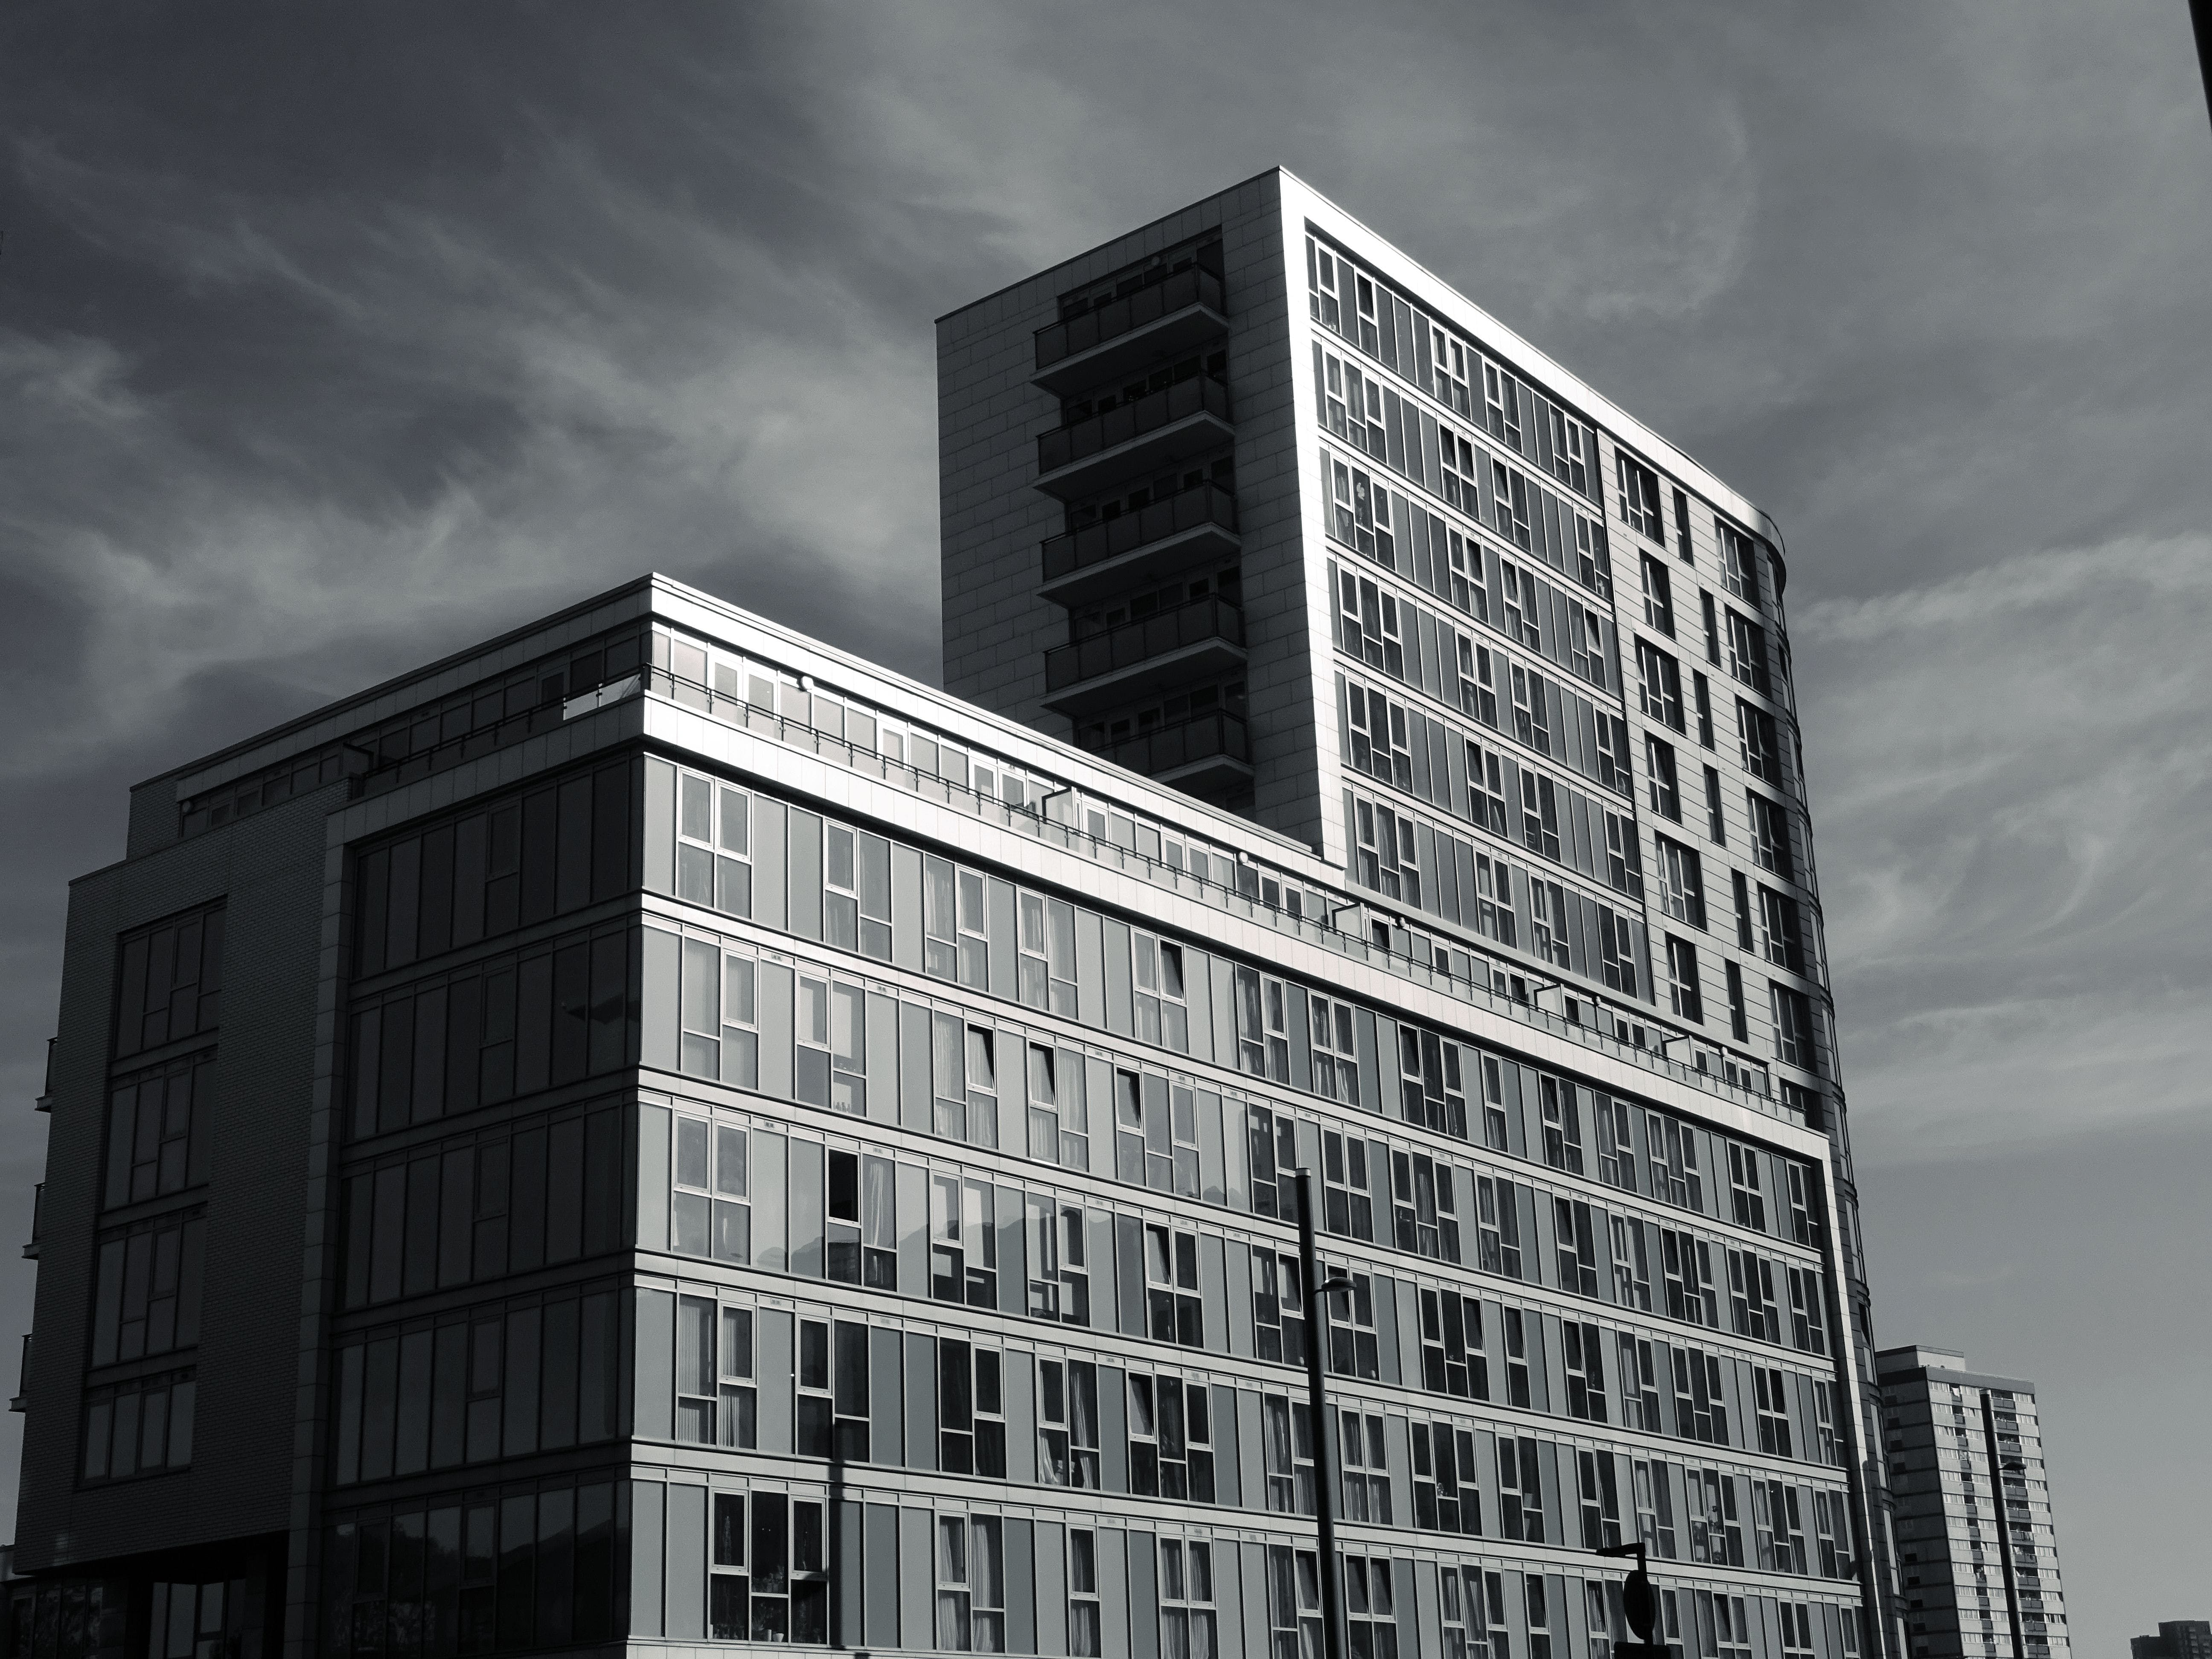 Grayscale Photo of Building Under Cloudy Day Sky